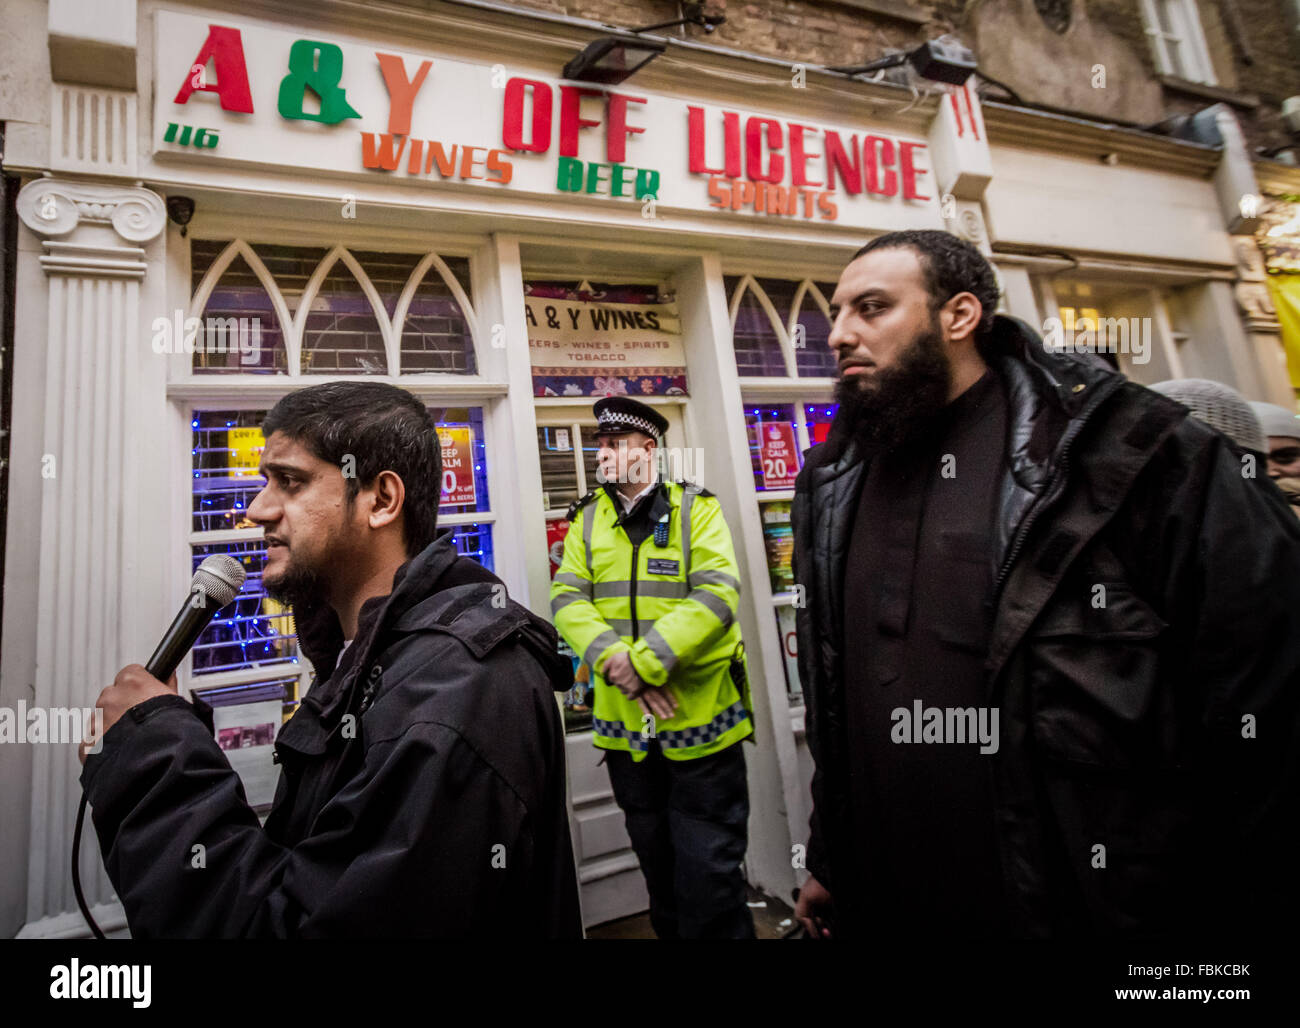 FILE IMAGES: London, UK.13th Dec, 2013. File Images from 13-12-2013: Mohammed Reza Haque (Right), 35, known as the - Stock Image